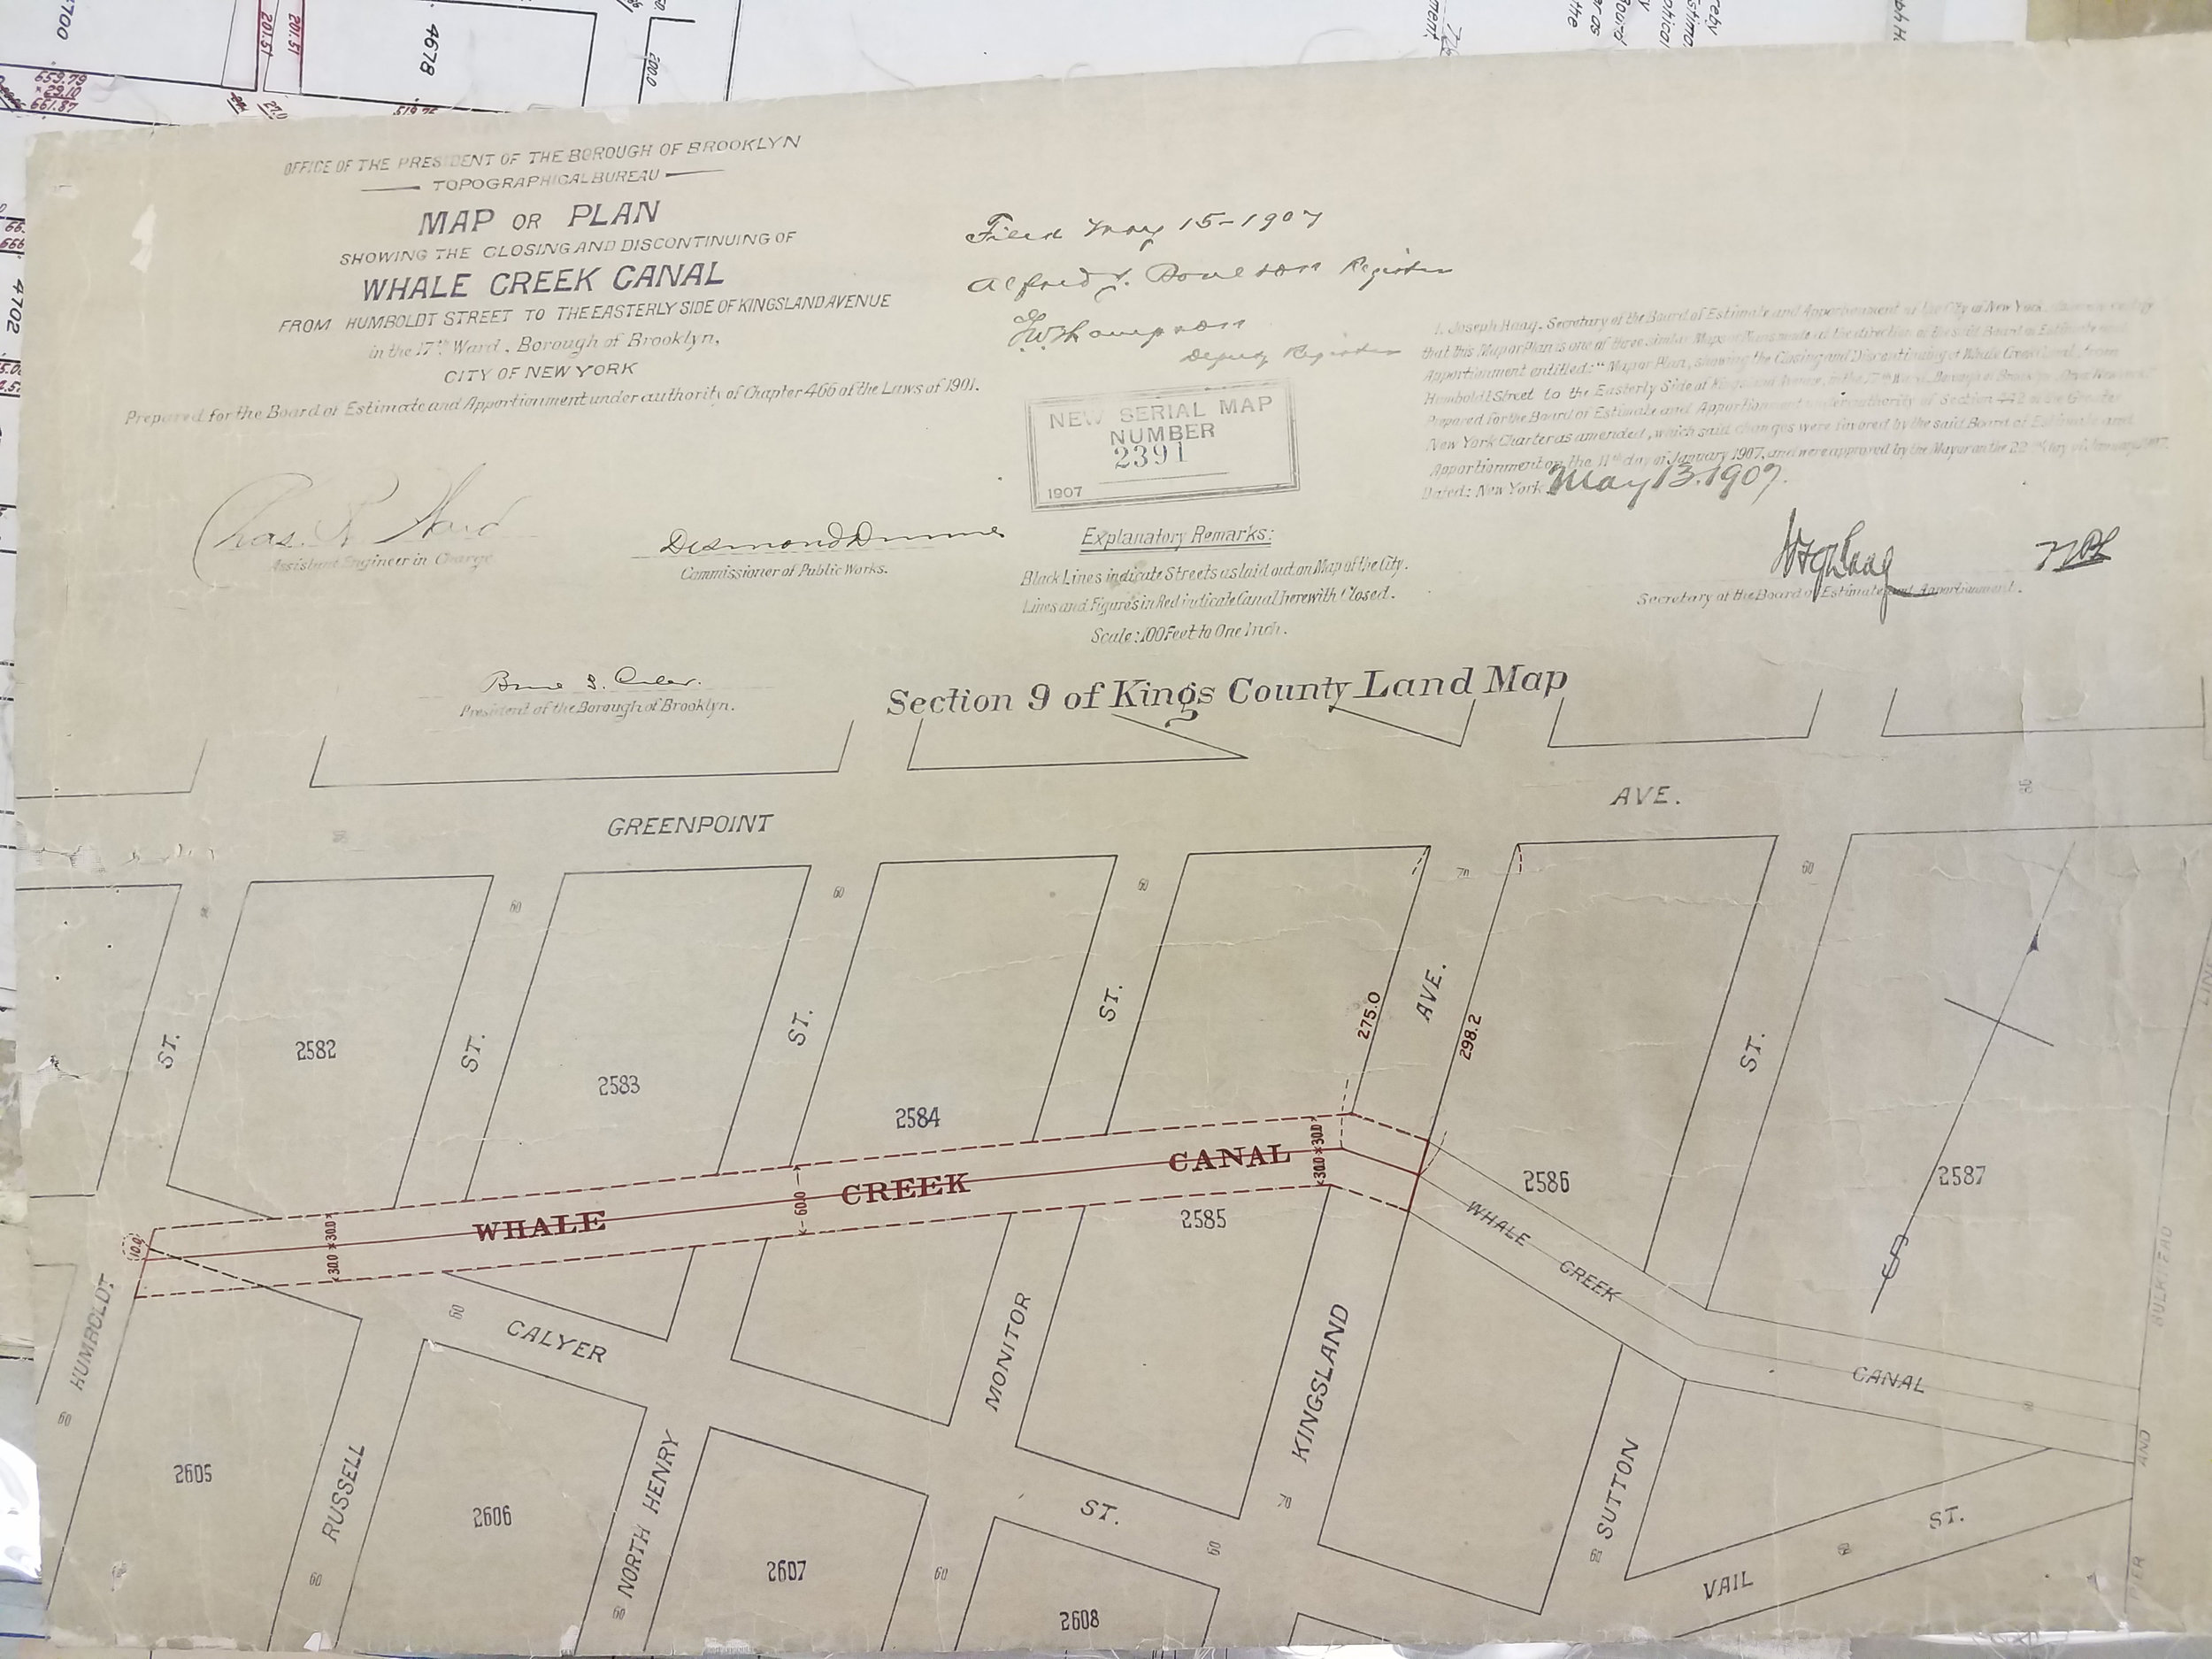 Map or Plan Showing the Closing and Discontinuing of Whale Creek Canal From Humboldt Street to the Easterly Side of Kingsland Avenue, 1907. City Register collection, NYC Municipal Archives.